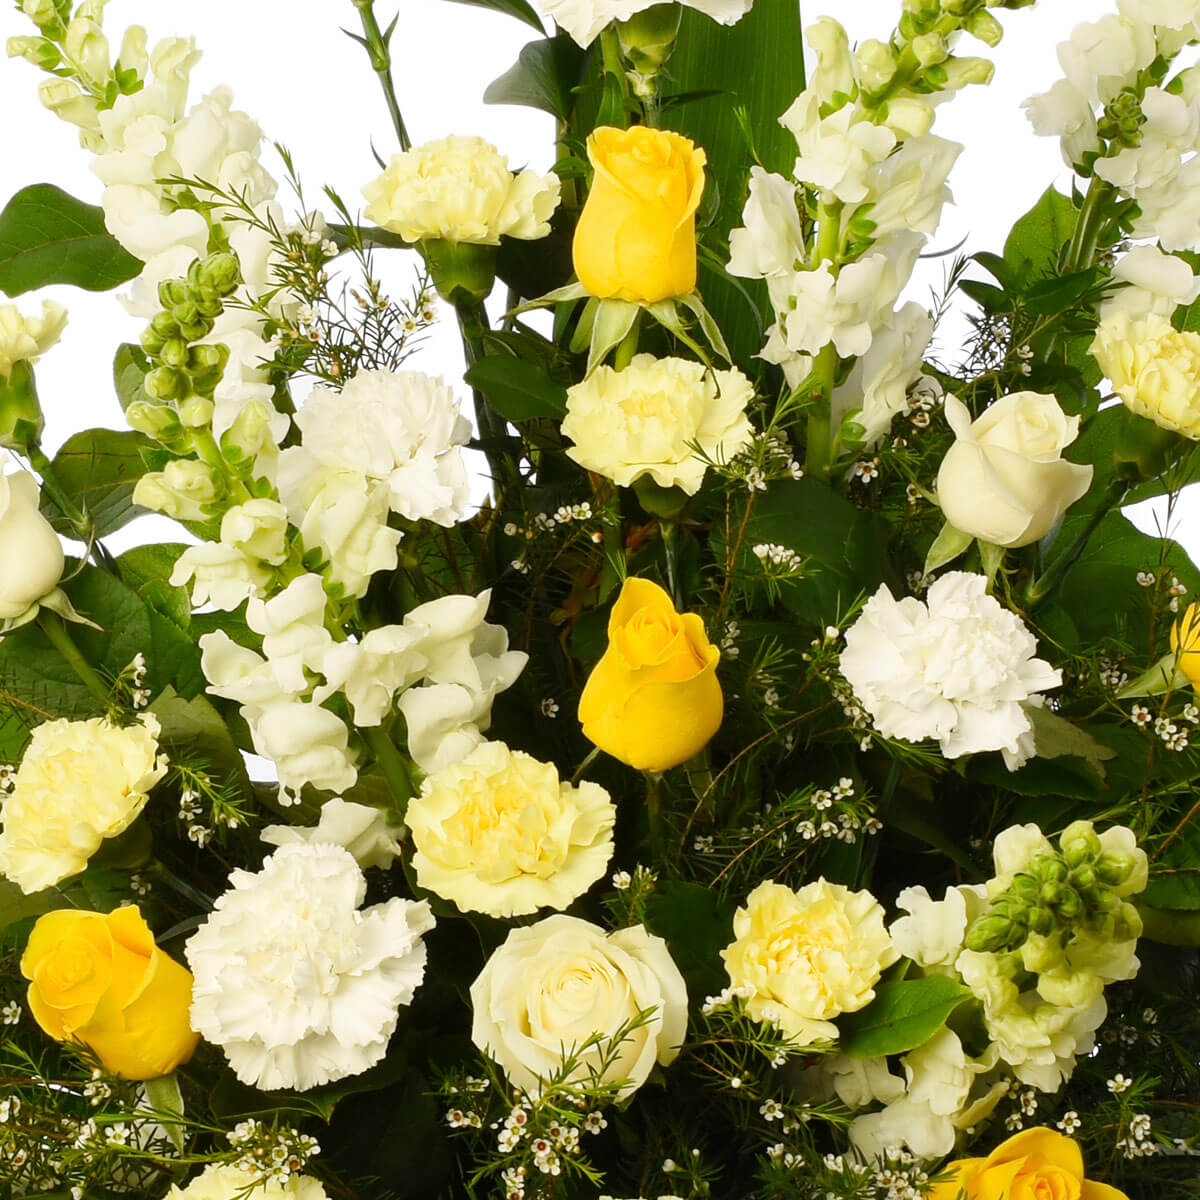 Best sympathy floral design for delivery to Burnaby, Vancouver & North Vancouver from Adele Rae Florist.